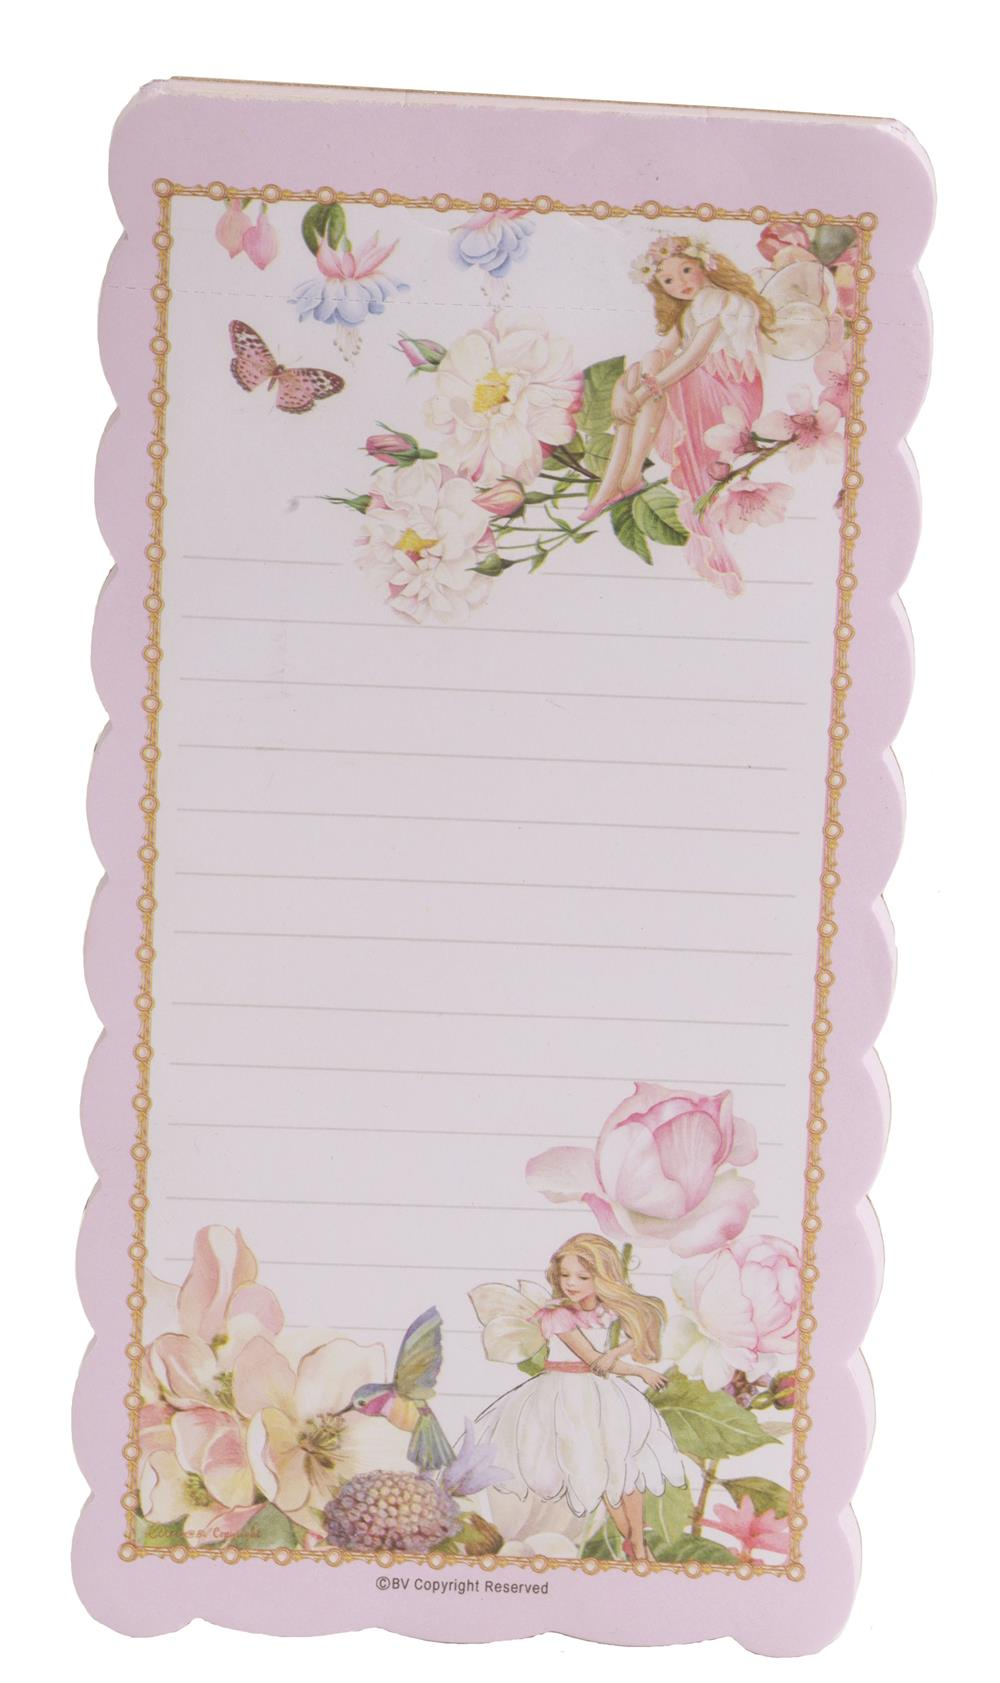 New - fairy design Notepad